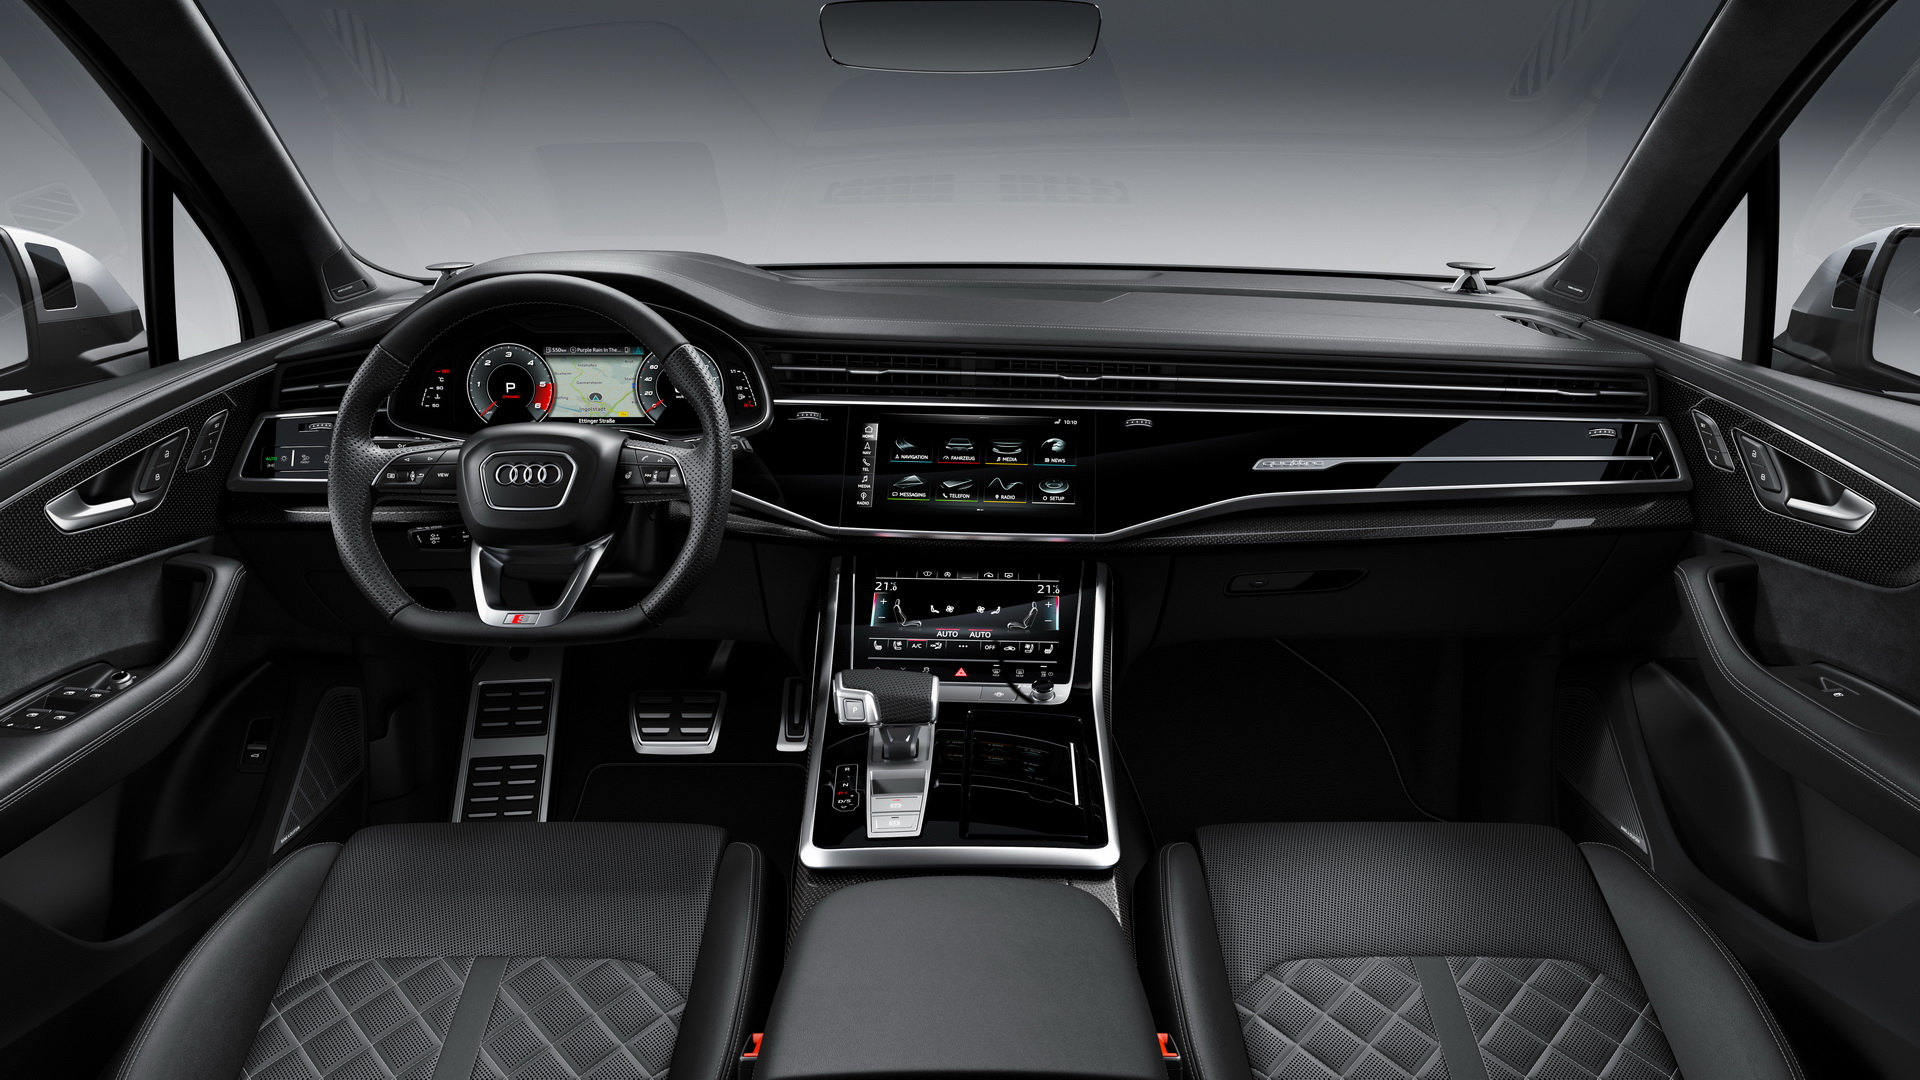 Refreshed Audi SQ7 revealed (retaining 900 Nm V8 TDI heart)